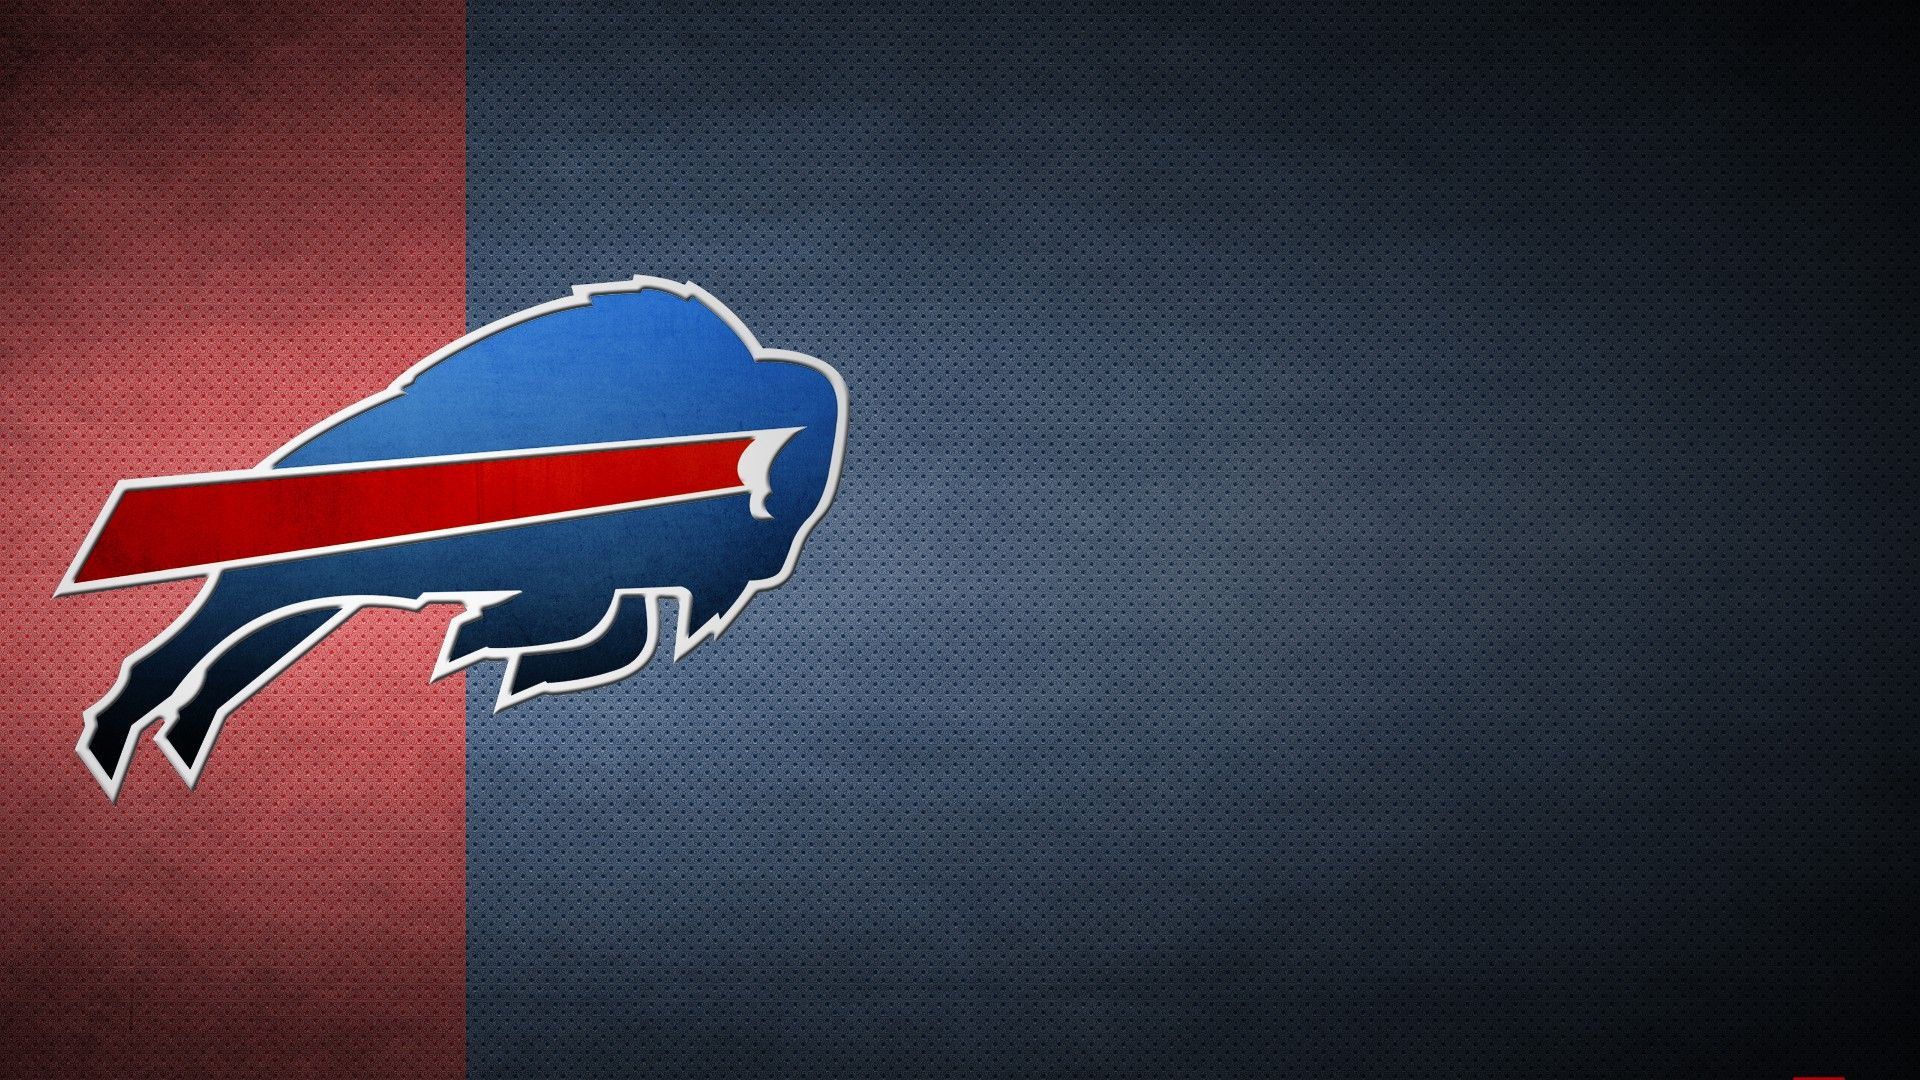 Wallpapers Buffalo Bills Wallpapers Buffalo bills Football 1920x1080